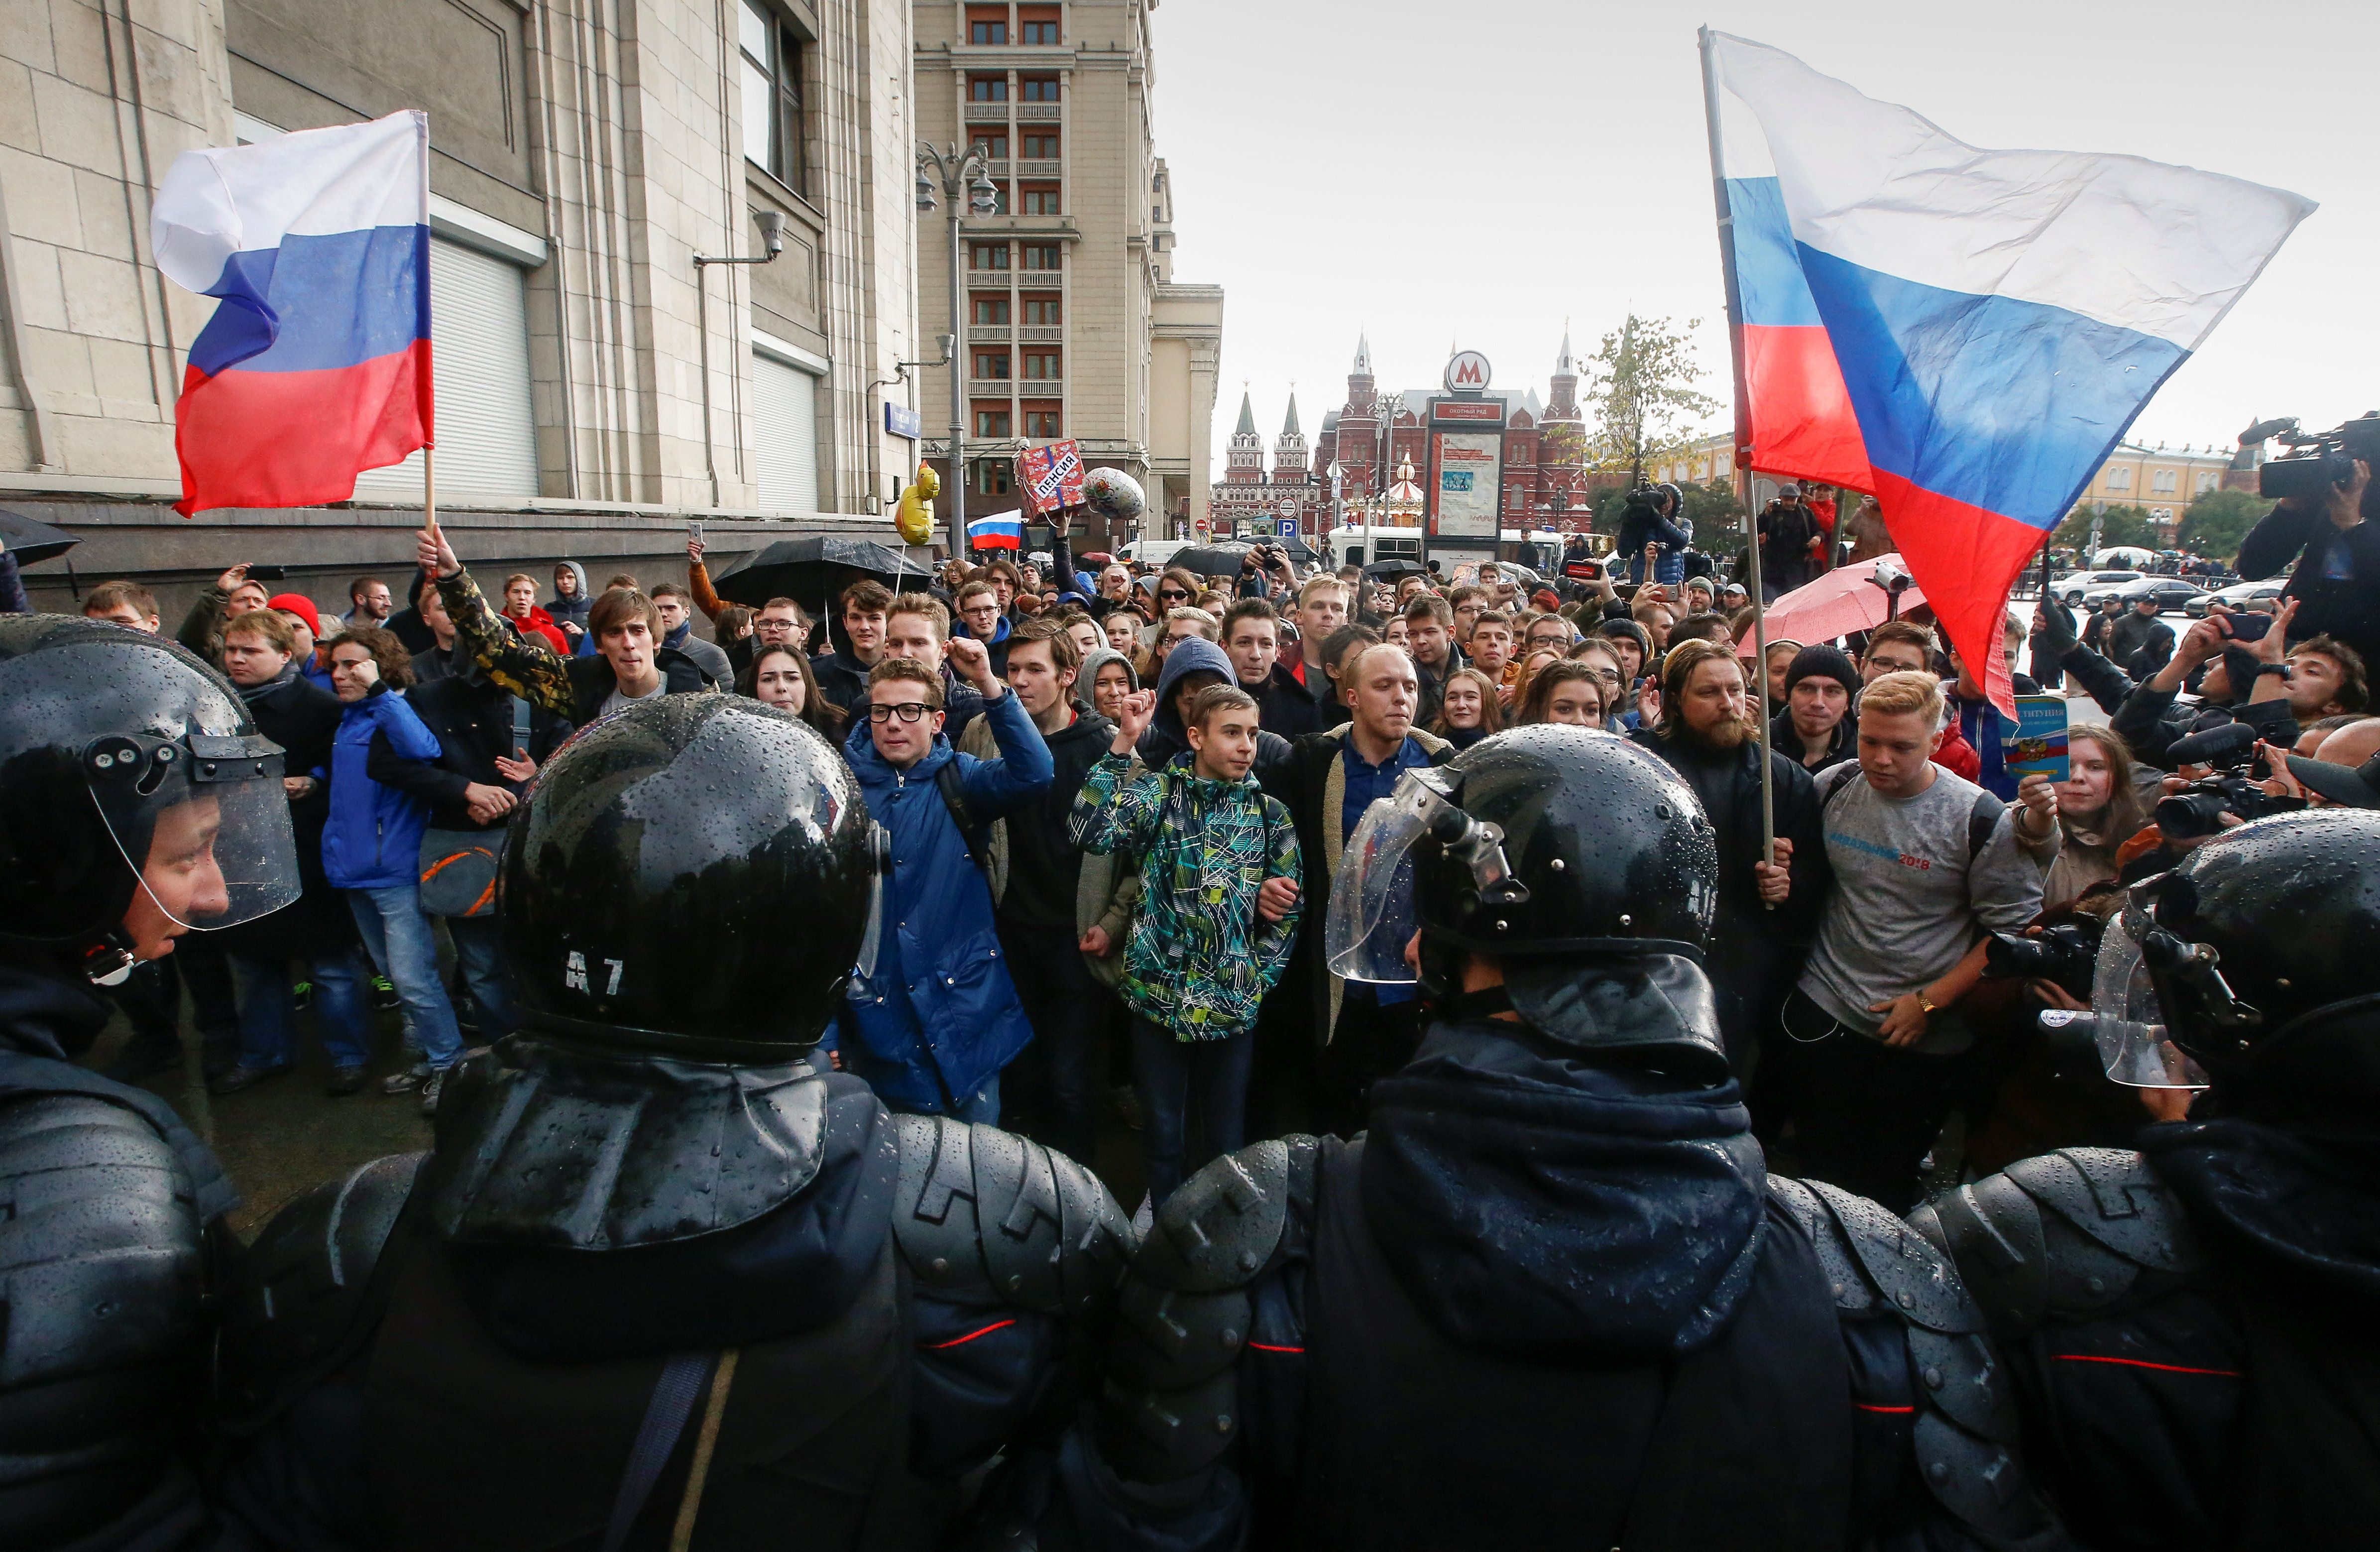 Police officers block supporters of Russian opposition leader Alexei Navalny during a rally in Moscow, Russia October 7, 2017